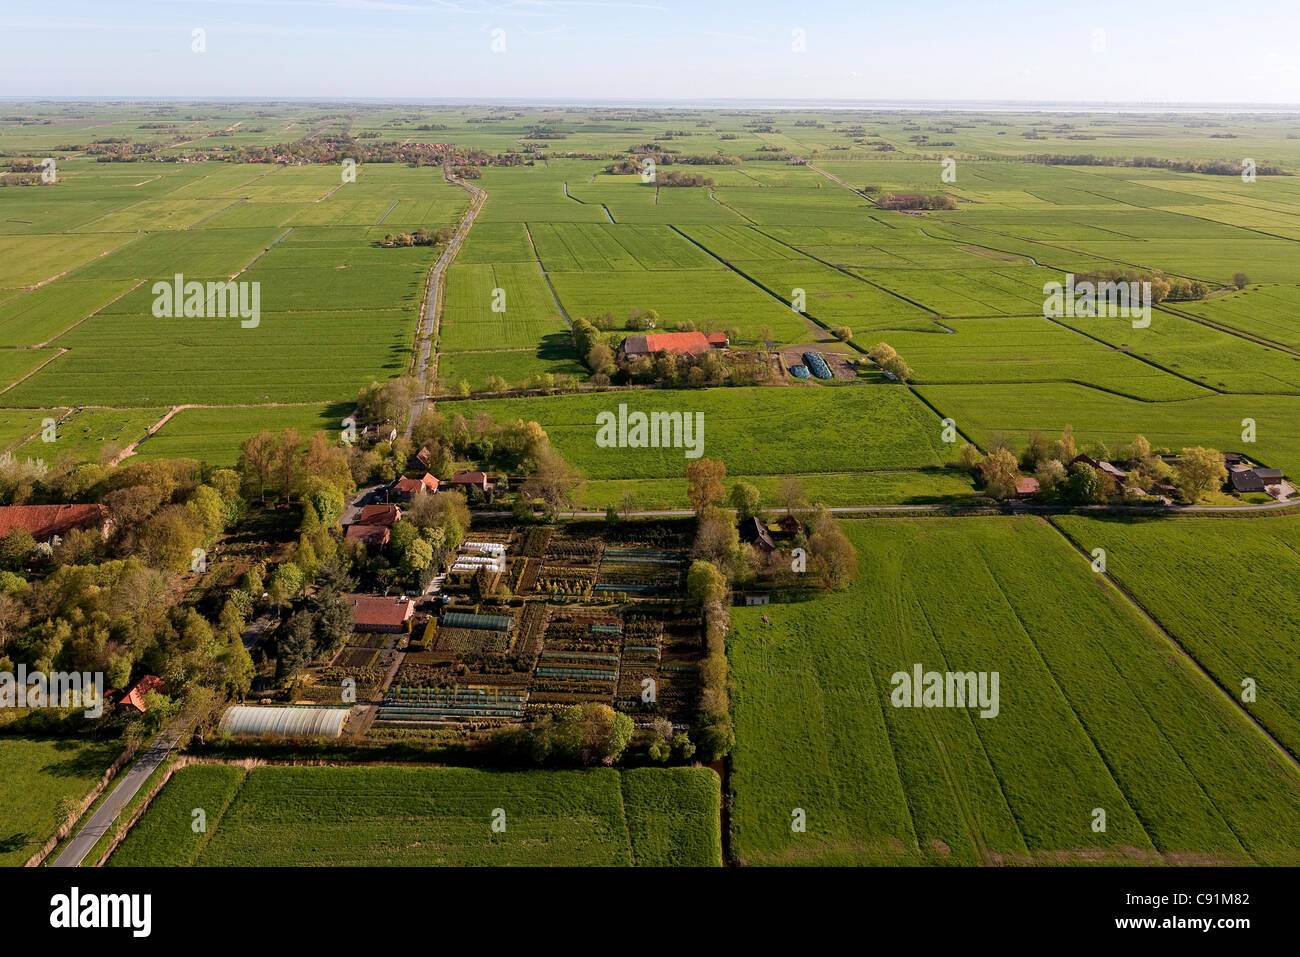 Aerial view of a market garden, farm in Lower Saxony, Germany - Stock Image